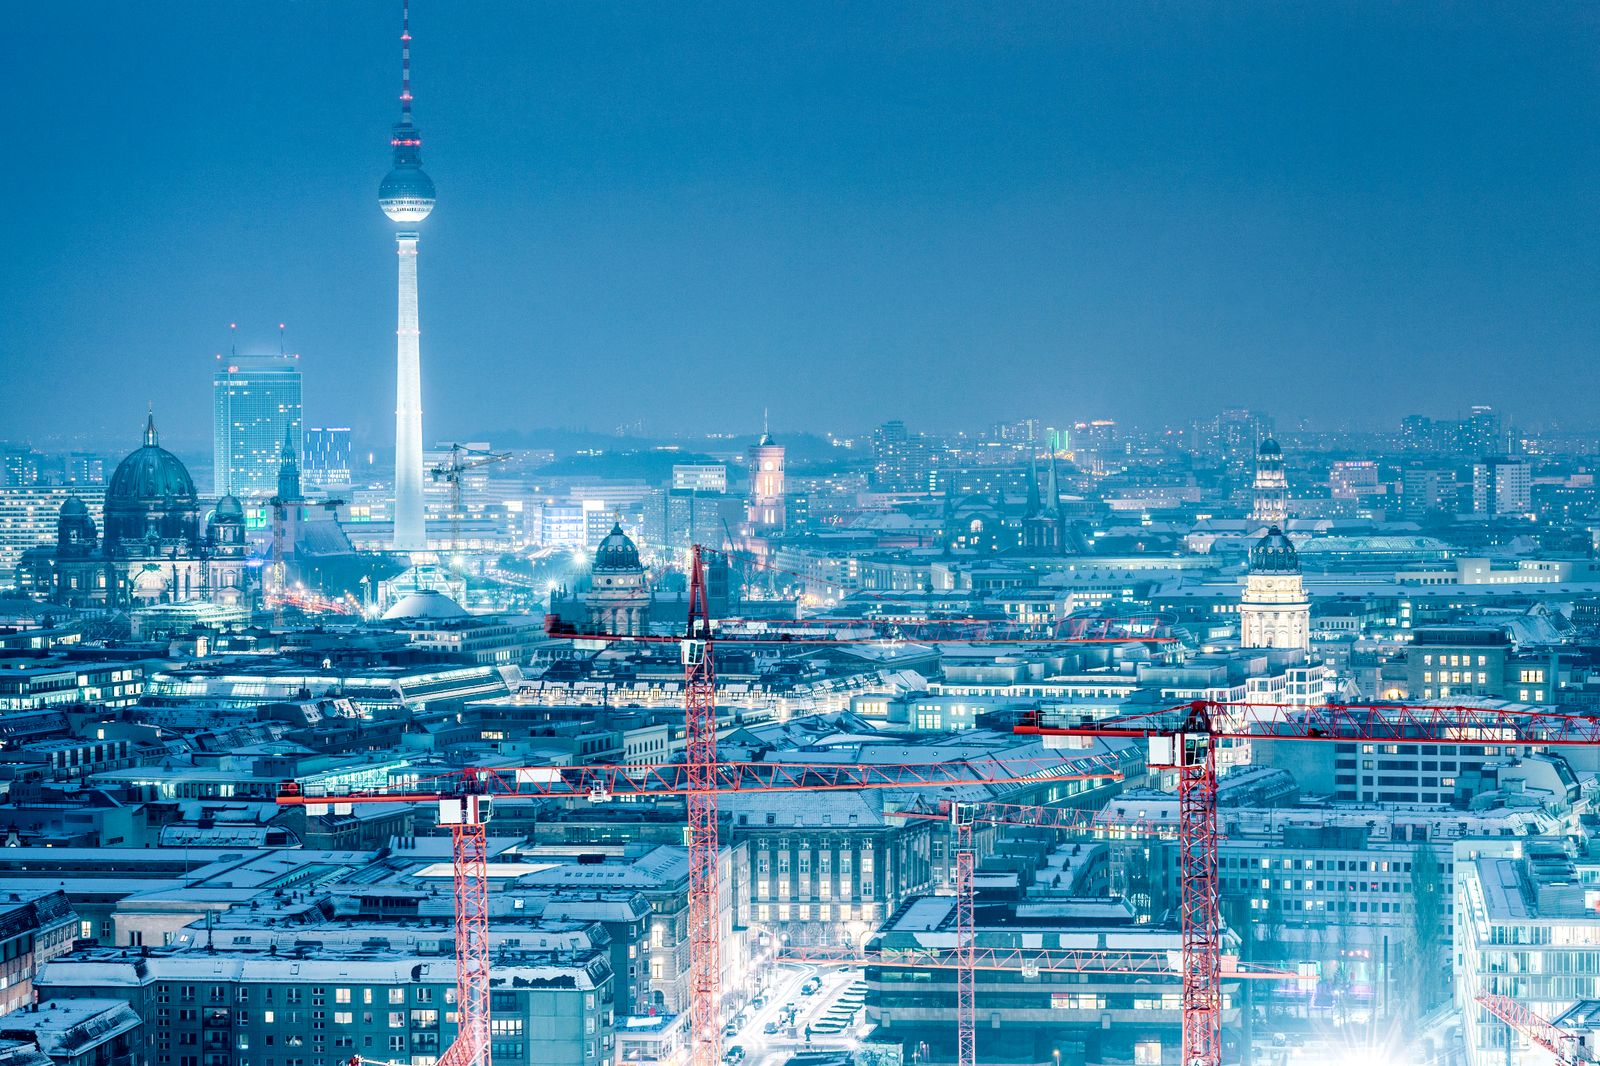 Winter cityscape and TV Tower at night, Berlin, Germany